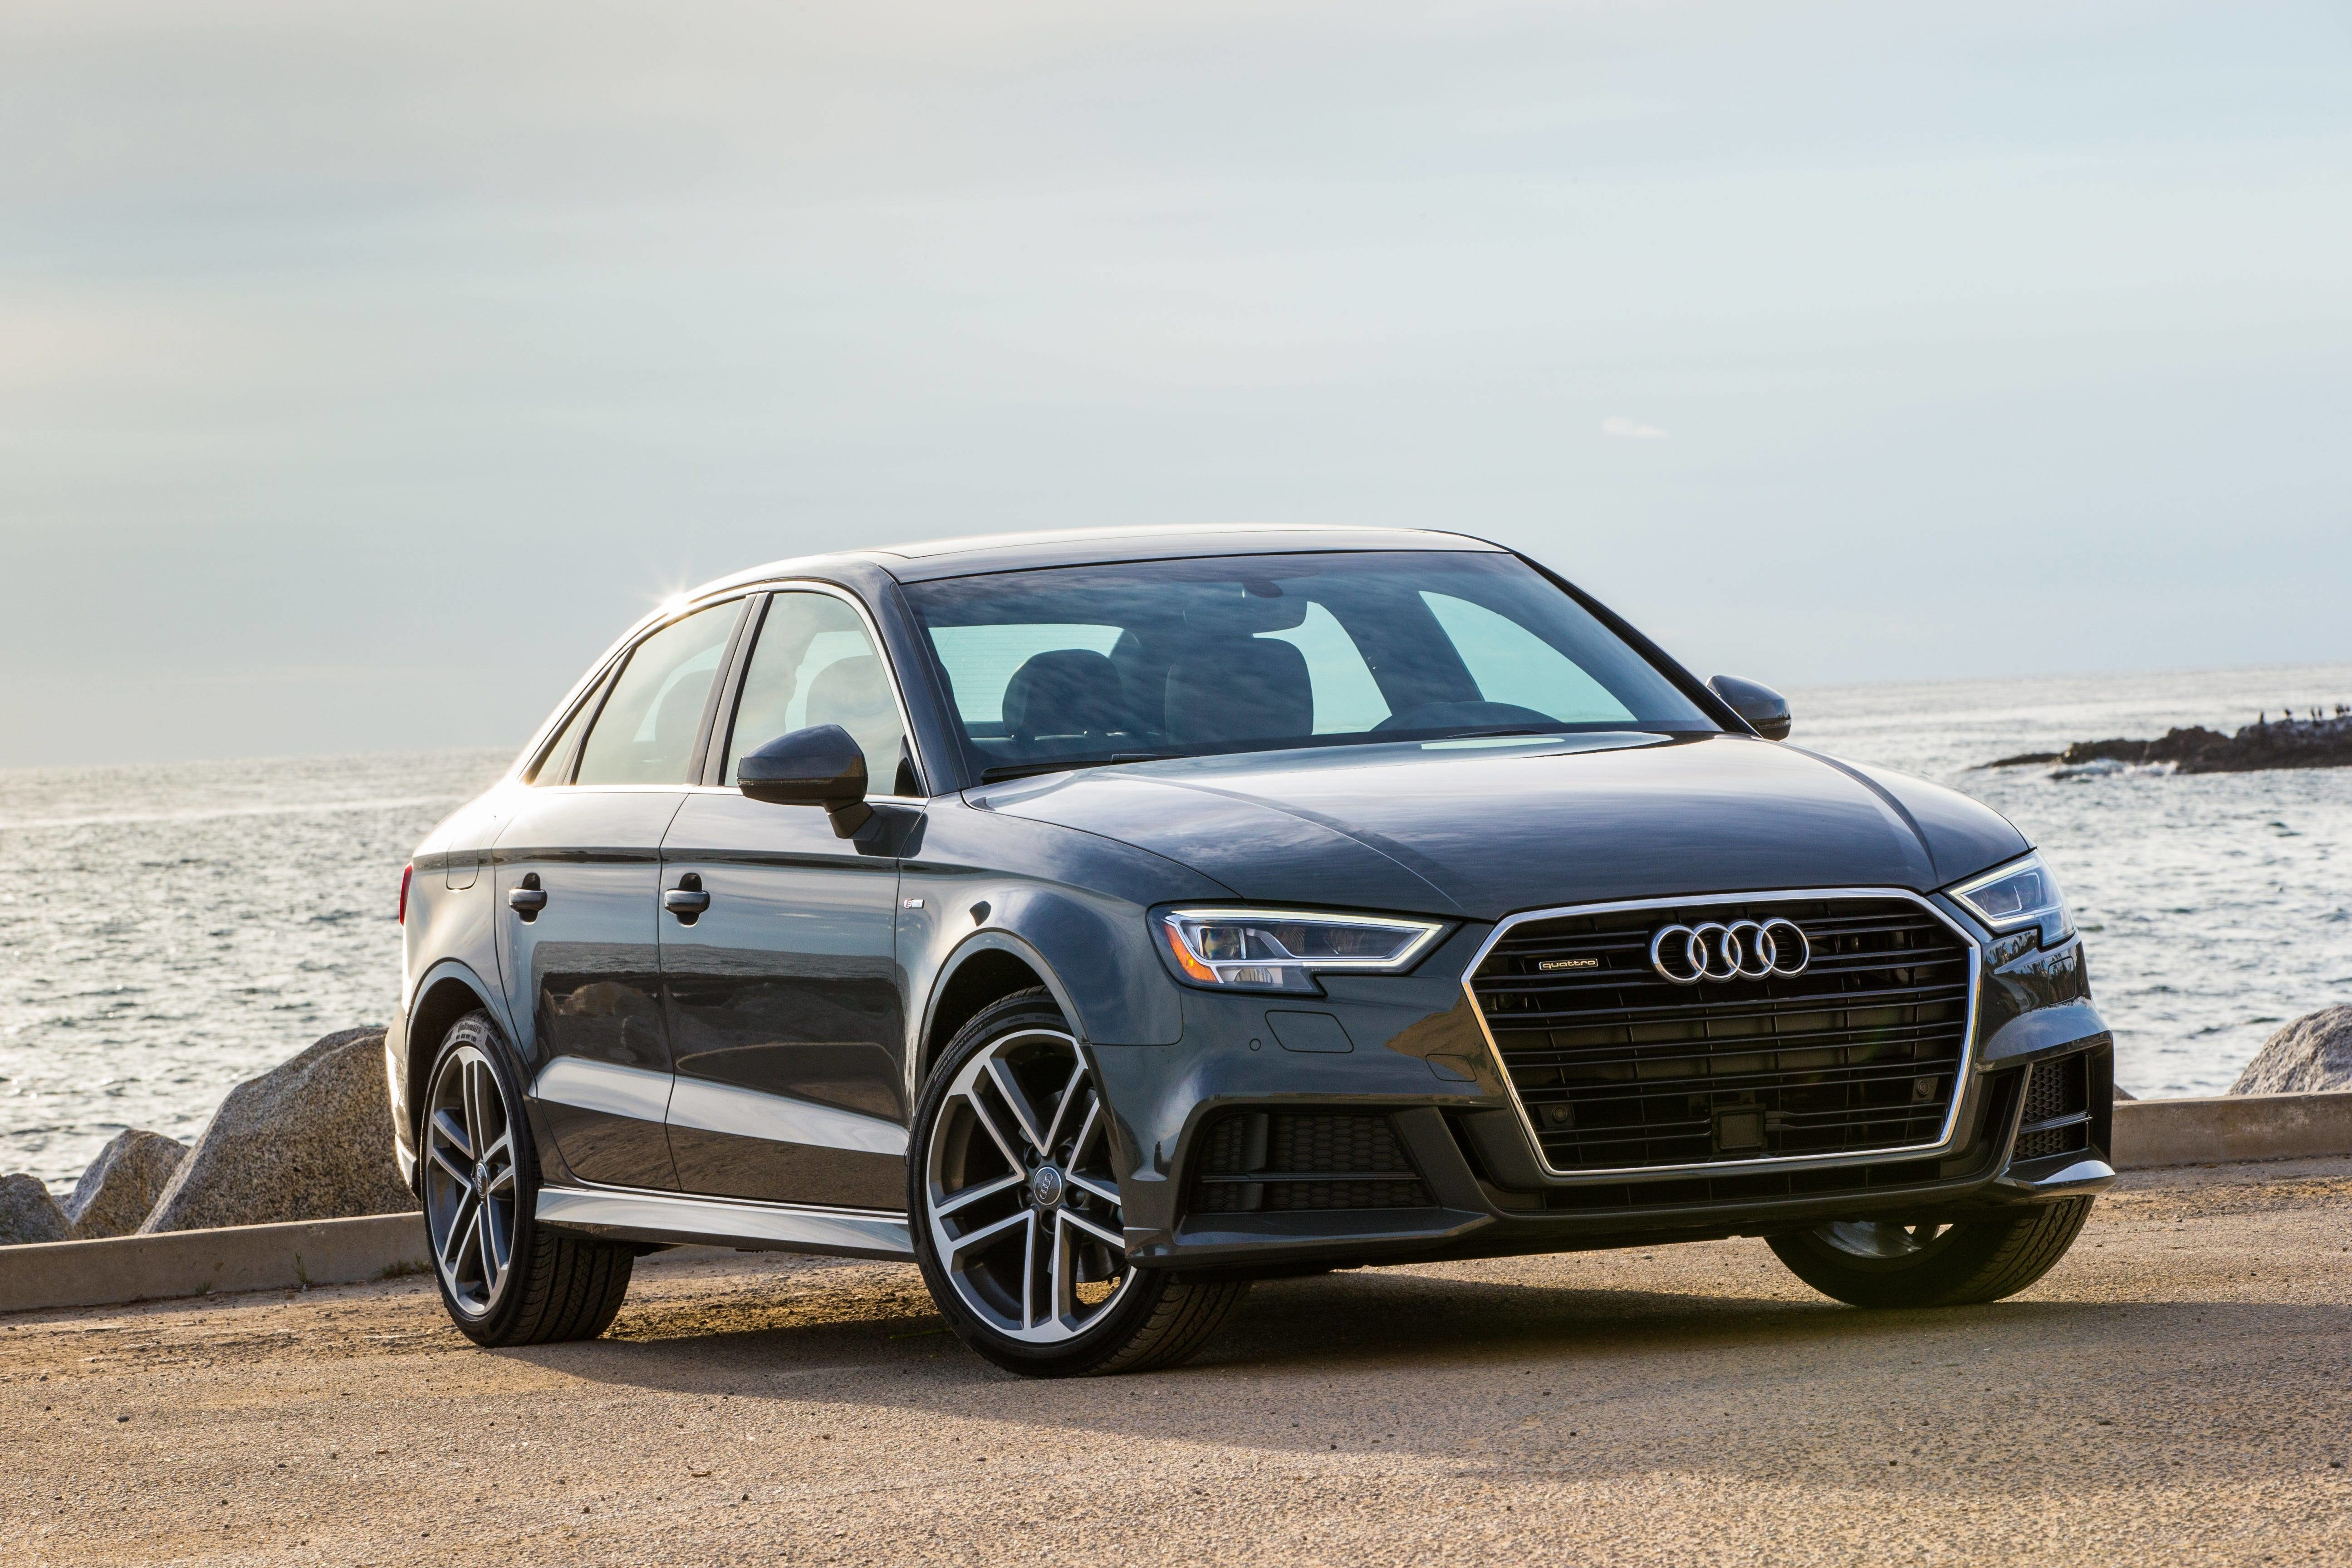 Latest Audi Luxury Car Shortage A3 A4 A5 Sedans Among Cars Free Download